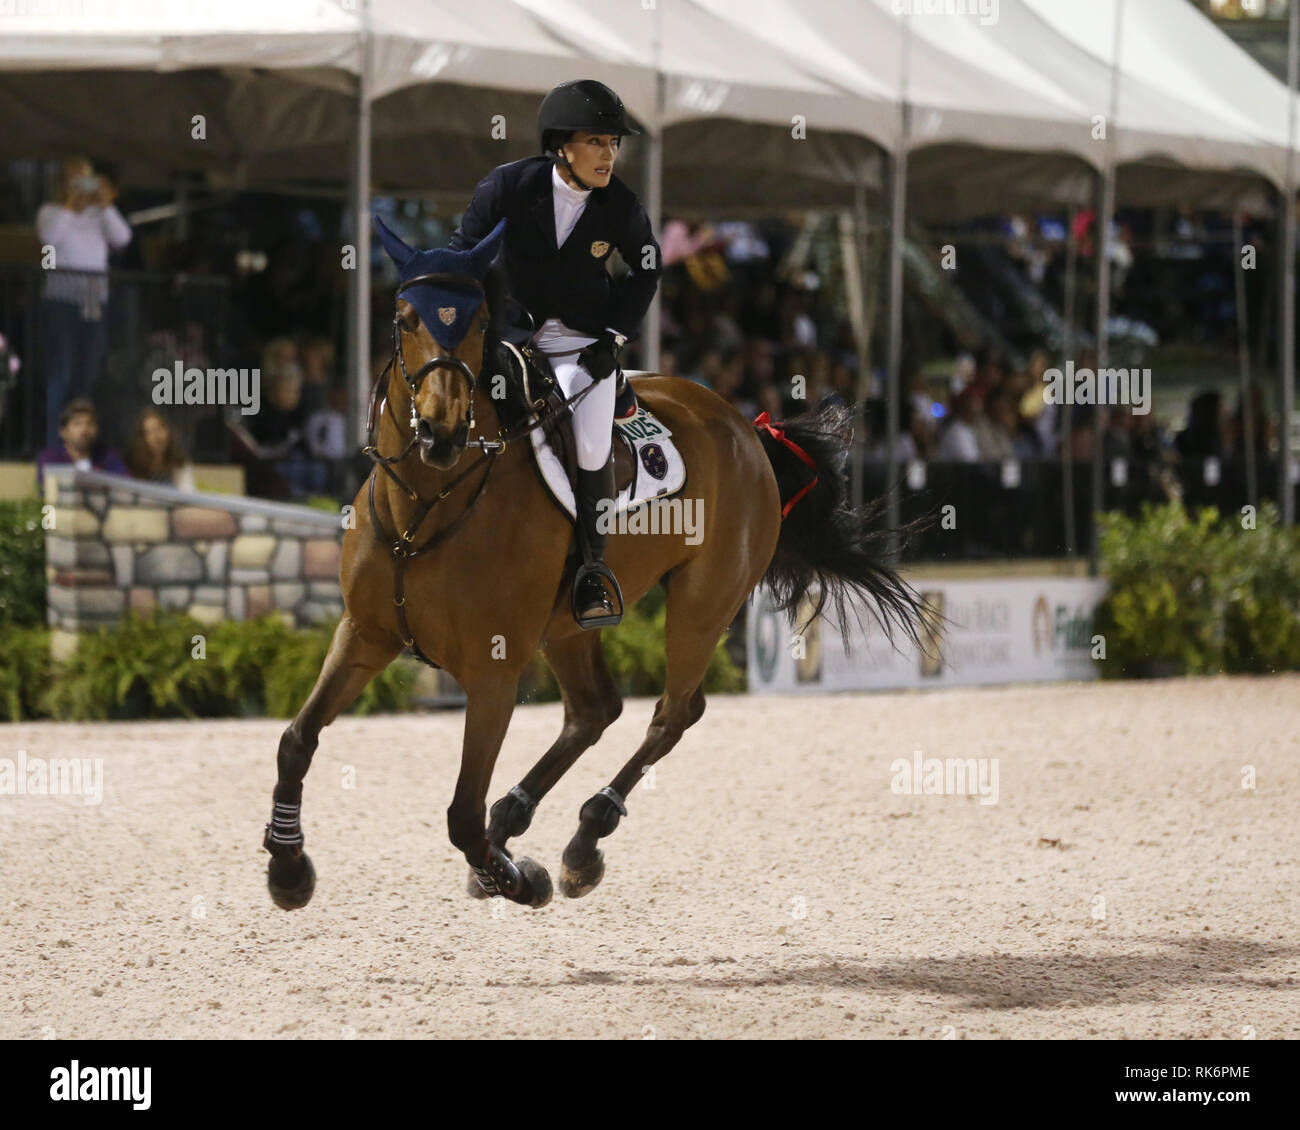 Florida, USA. 9th Feb 2019. Jessica Rae Springsteen (Bruce Springsteen's daughter) participates in Class 101 - FEI CSI5* $391,000 Fidelity Investments Grand Prix where the winner was Martin Fuchs (Swiss) second place was Kent Farrington (USA) and third was Conor Swail (IRE). Credit: Storms Media Group/Alamy Live News Stock Photo